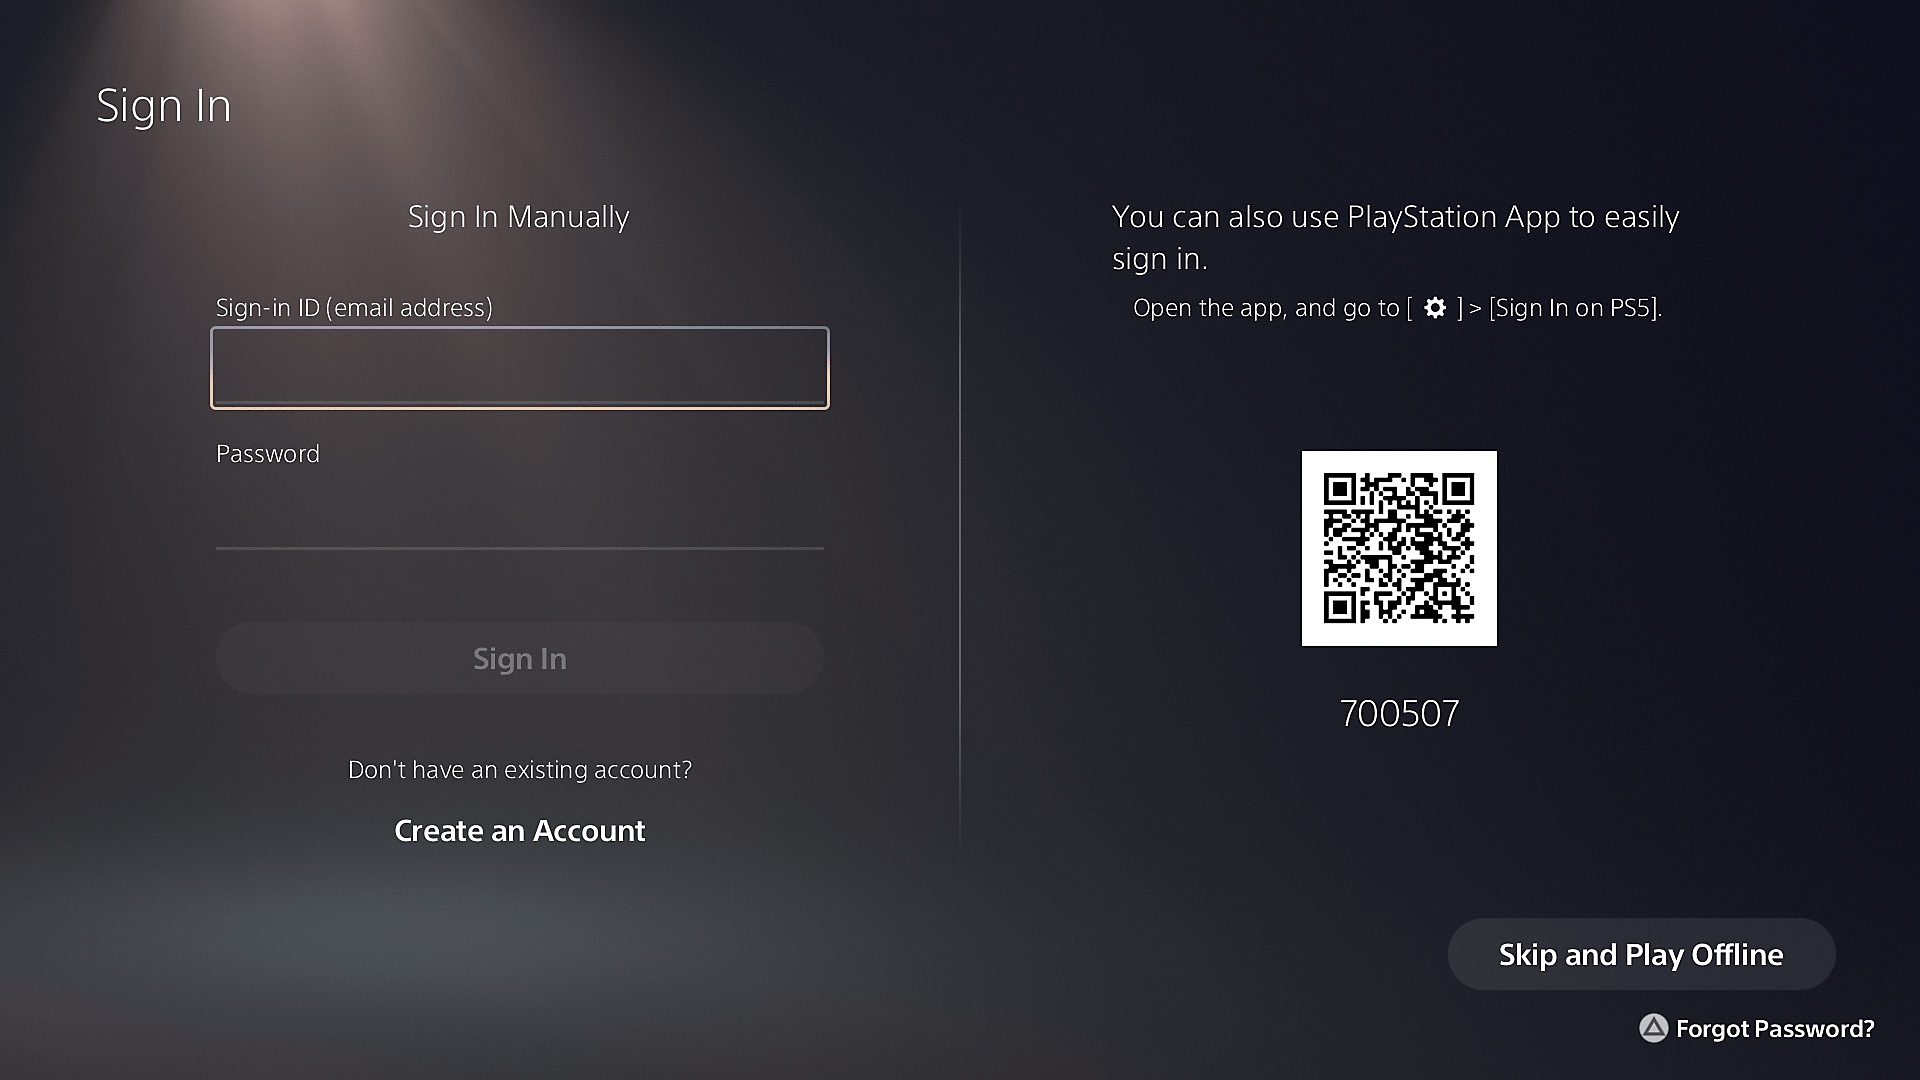 PS5 sign in with PS App QR code